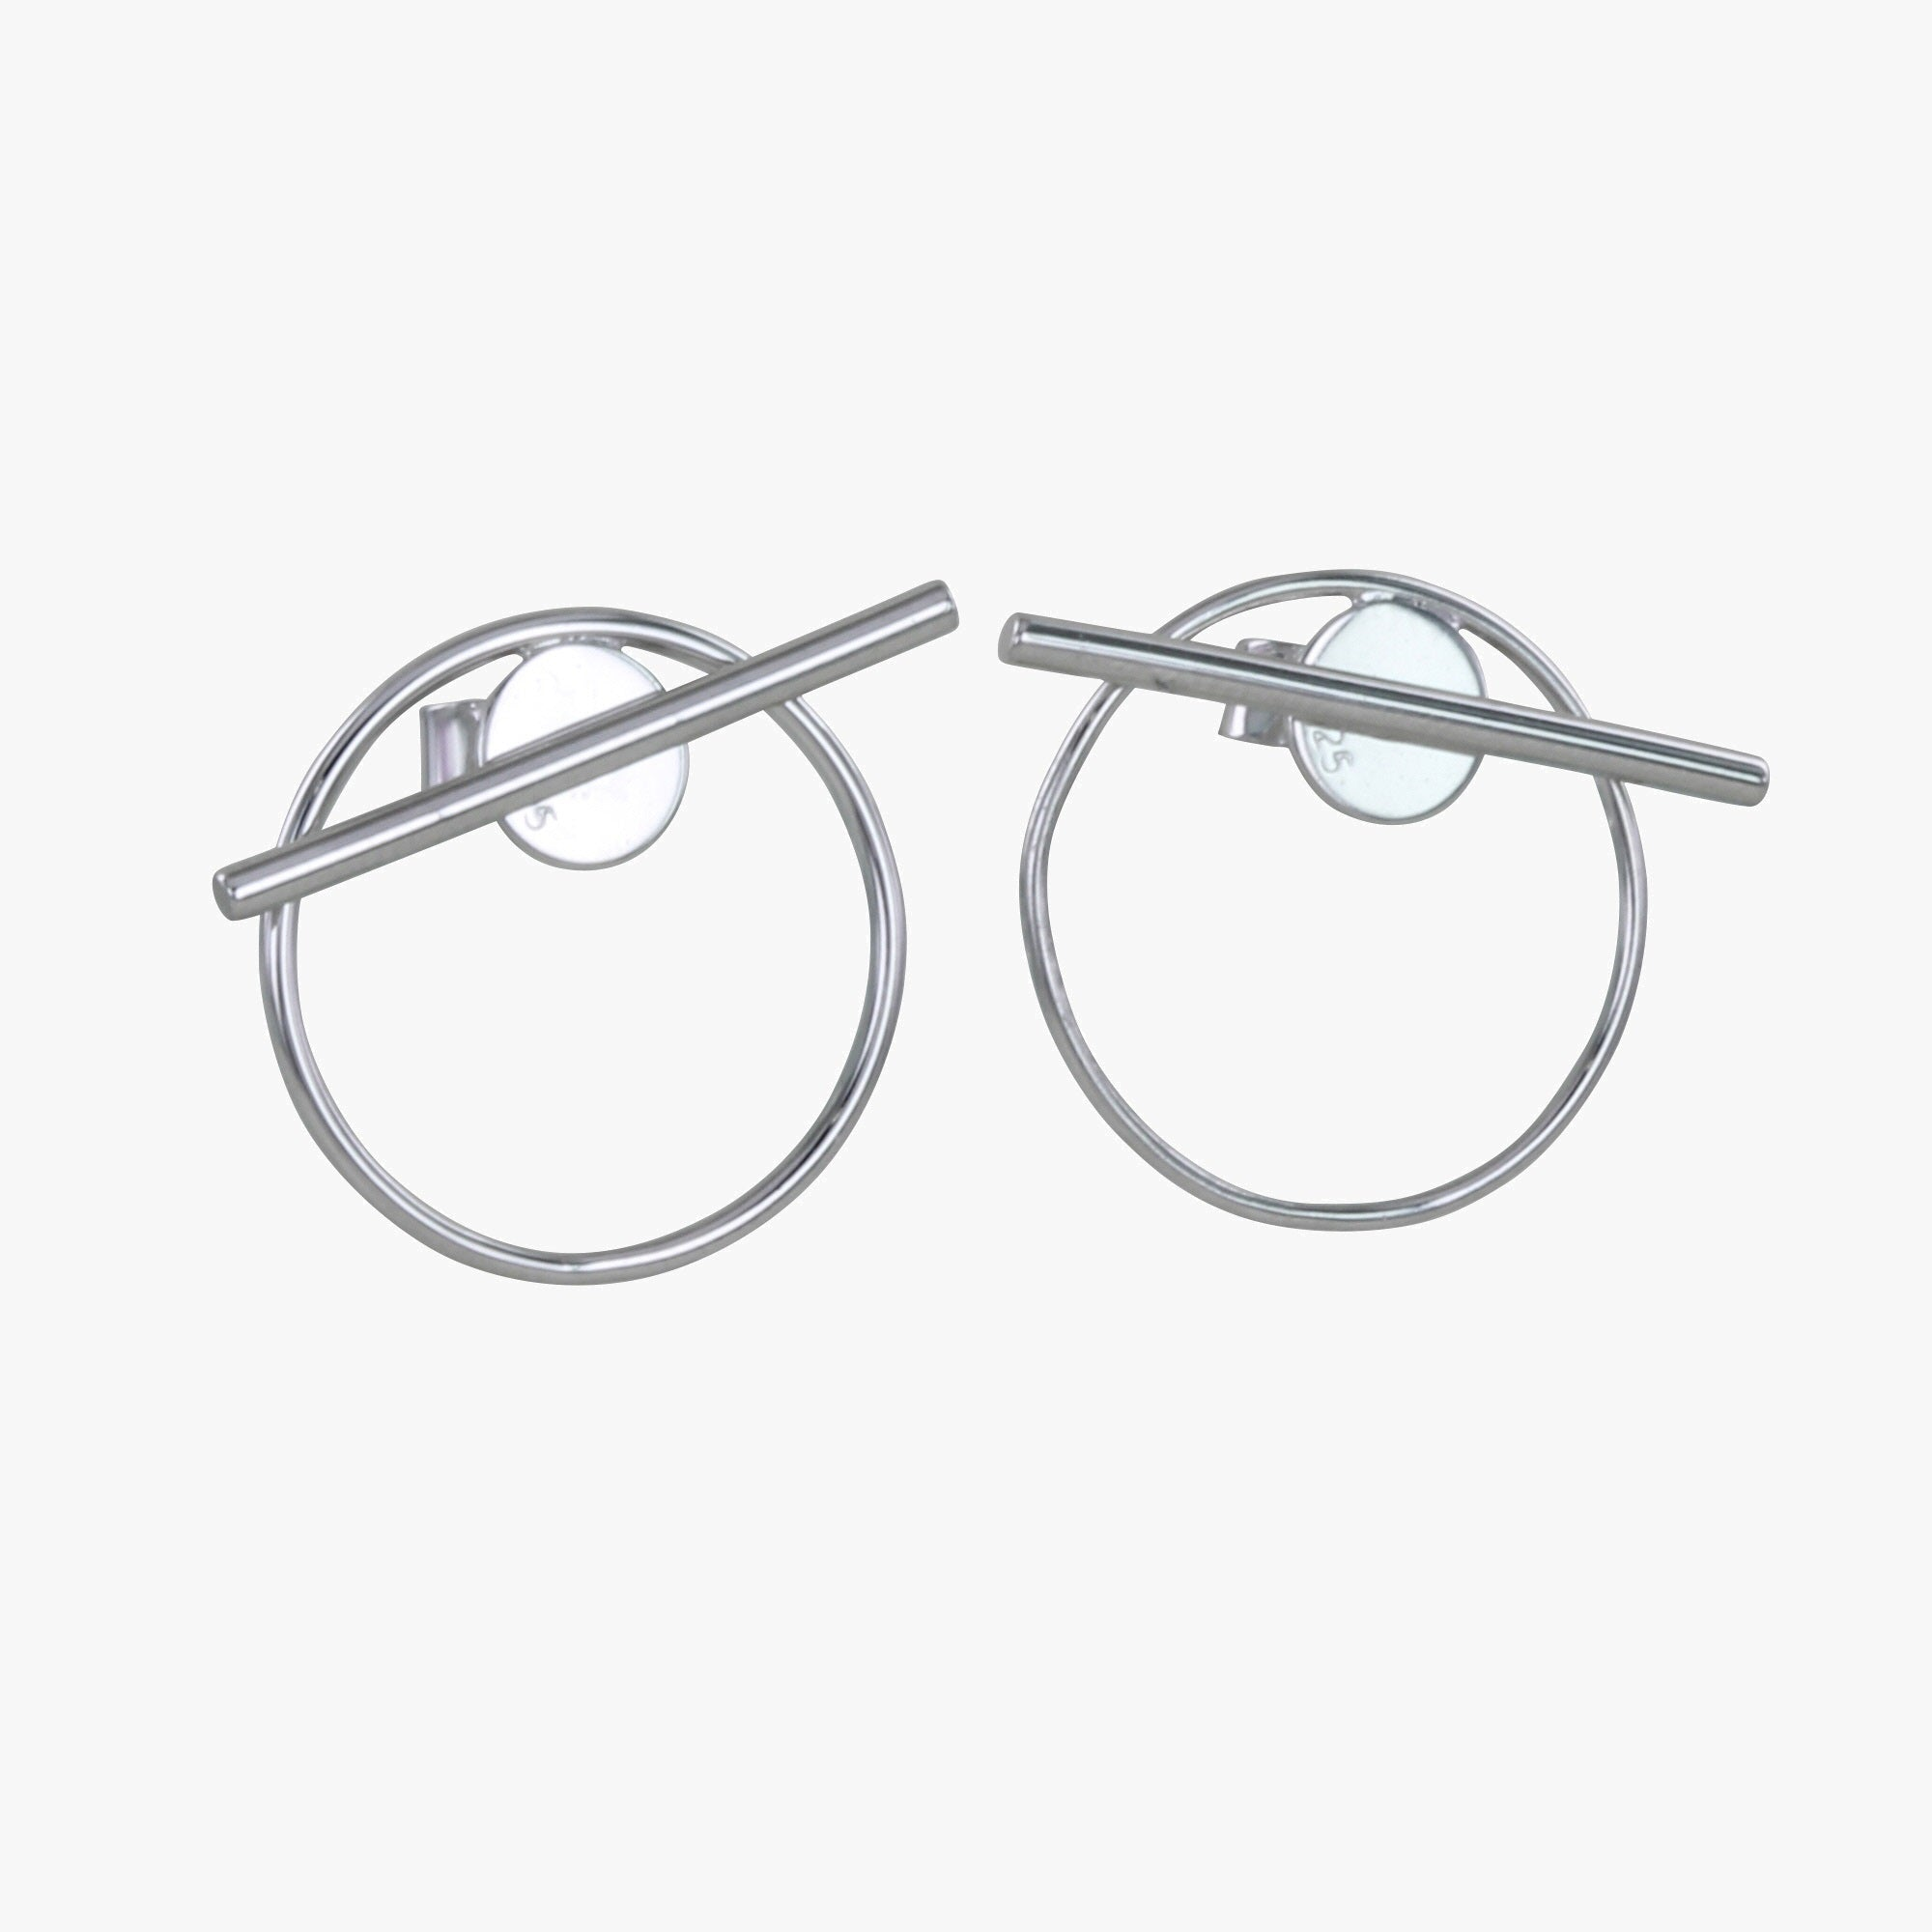 Silver Bar and Circle Stud Earrings